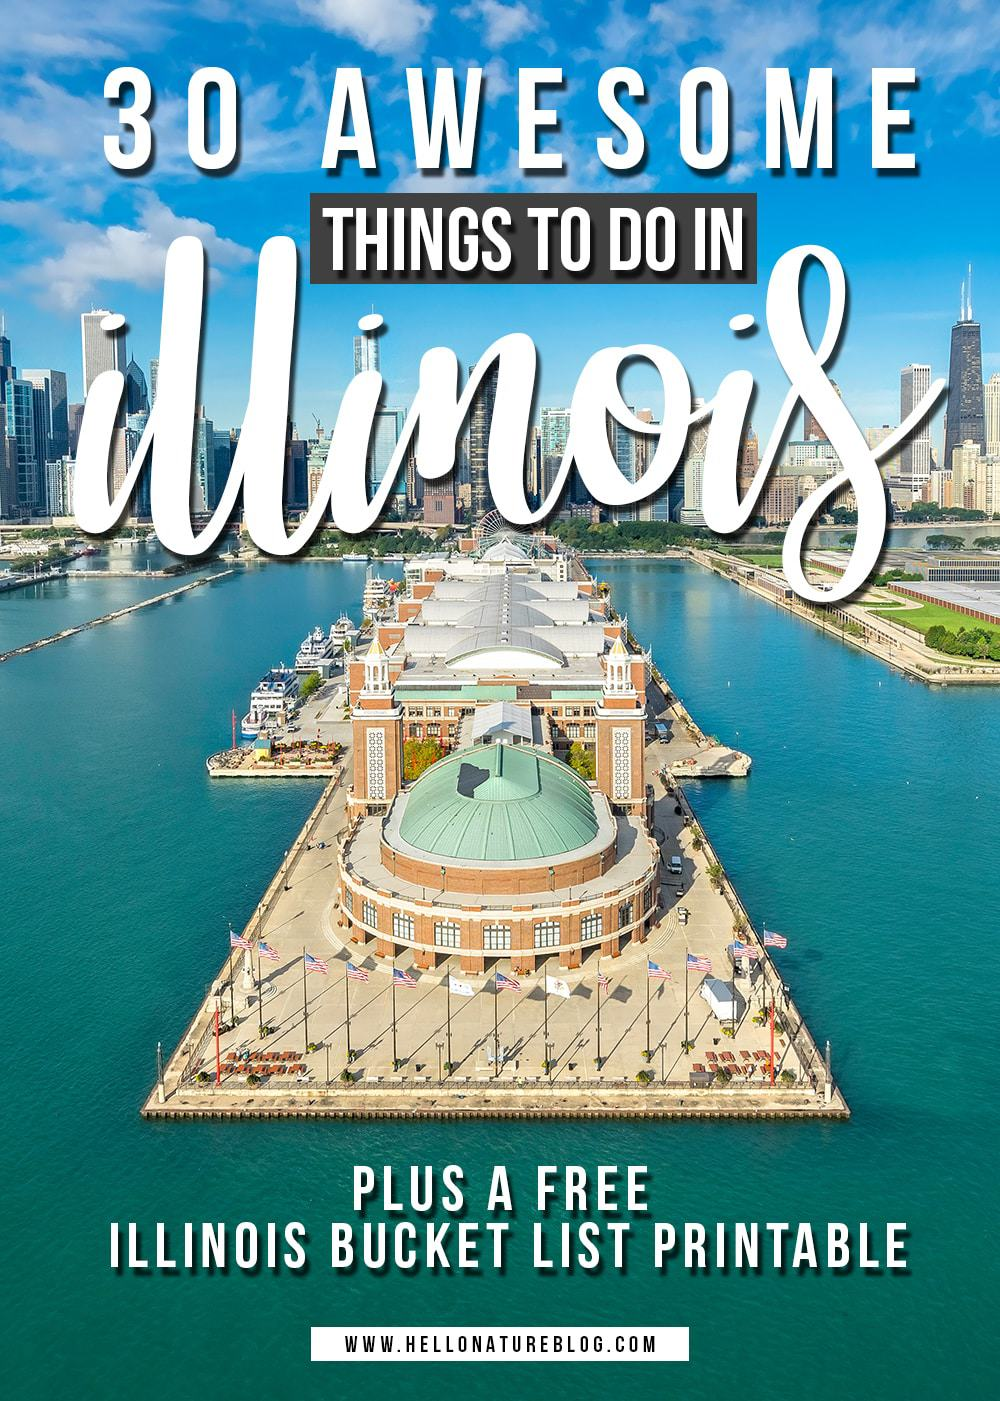 Things to do in Illinois on Navy Pier